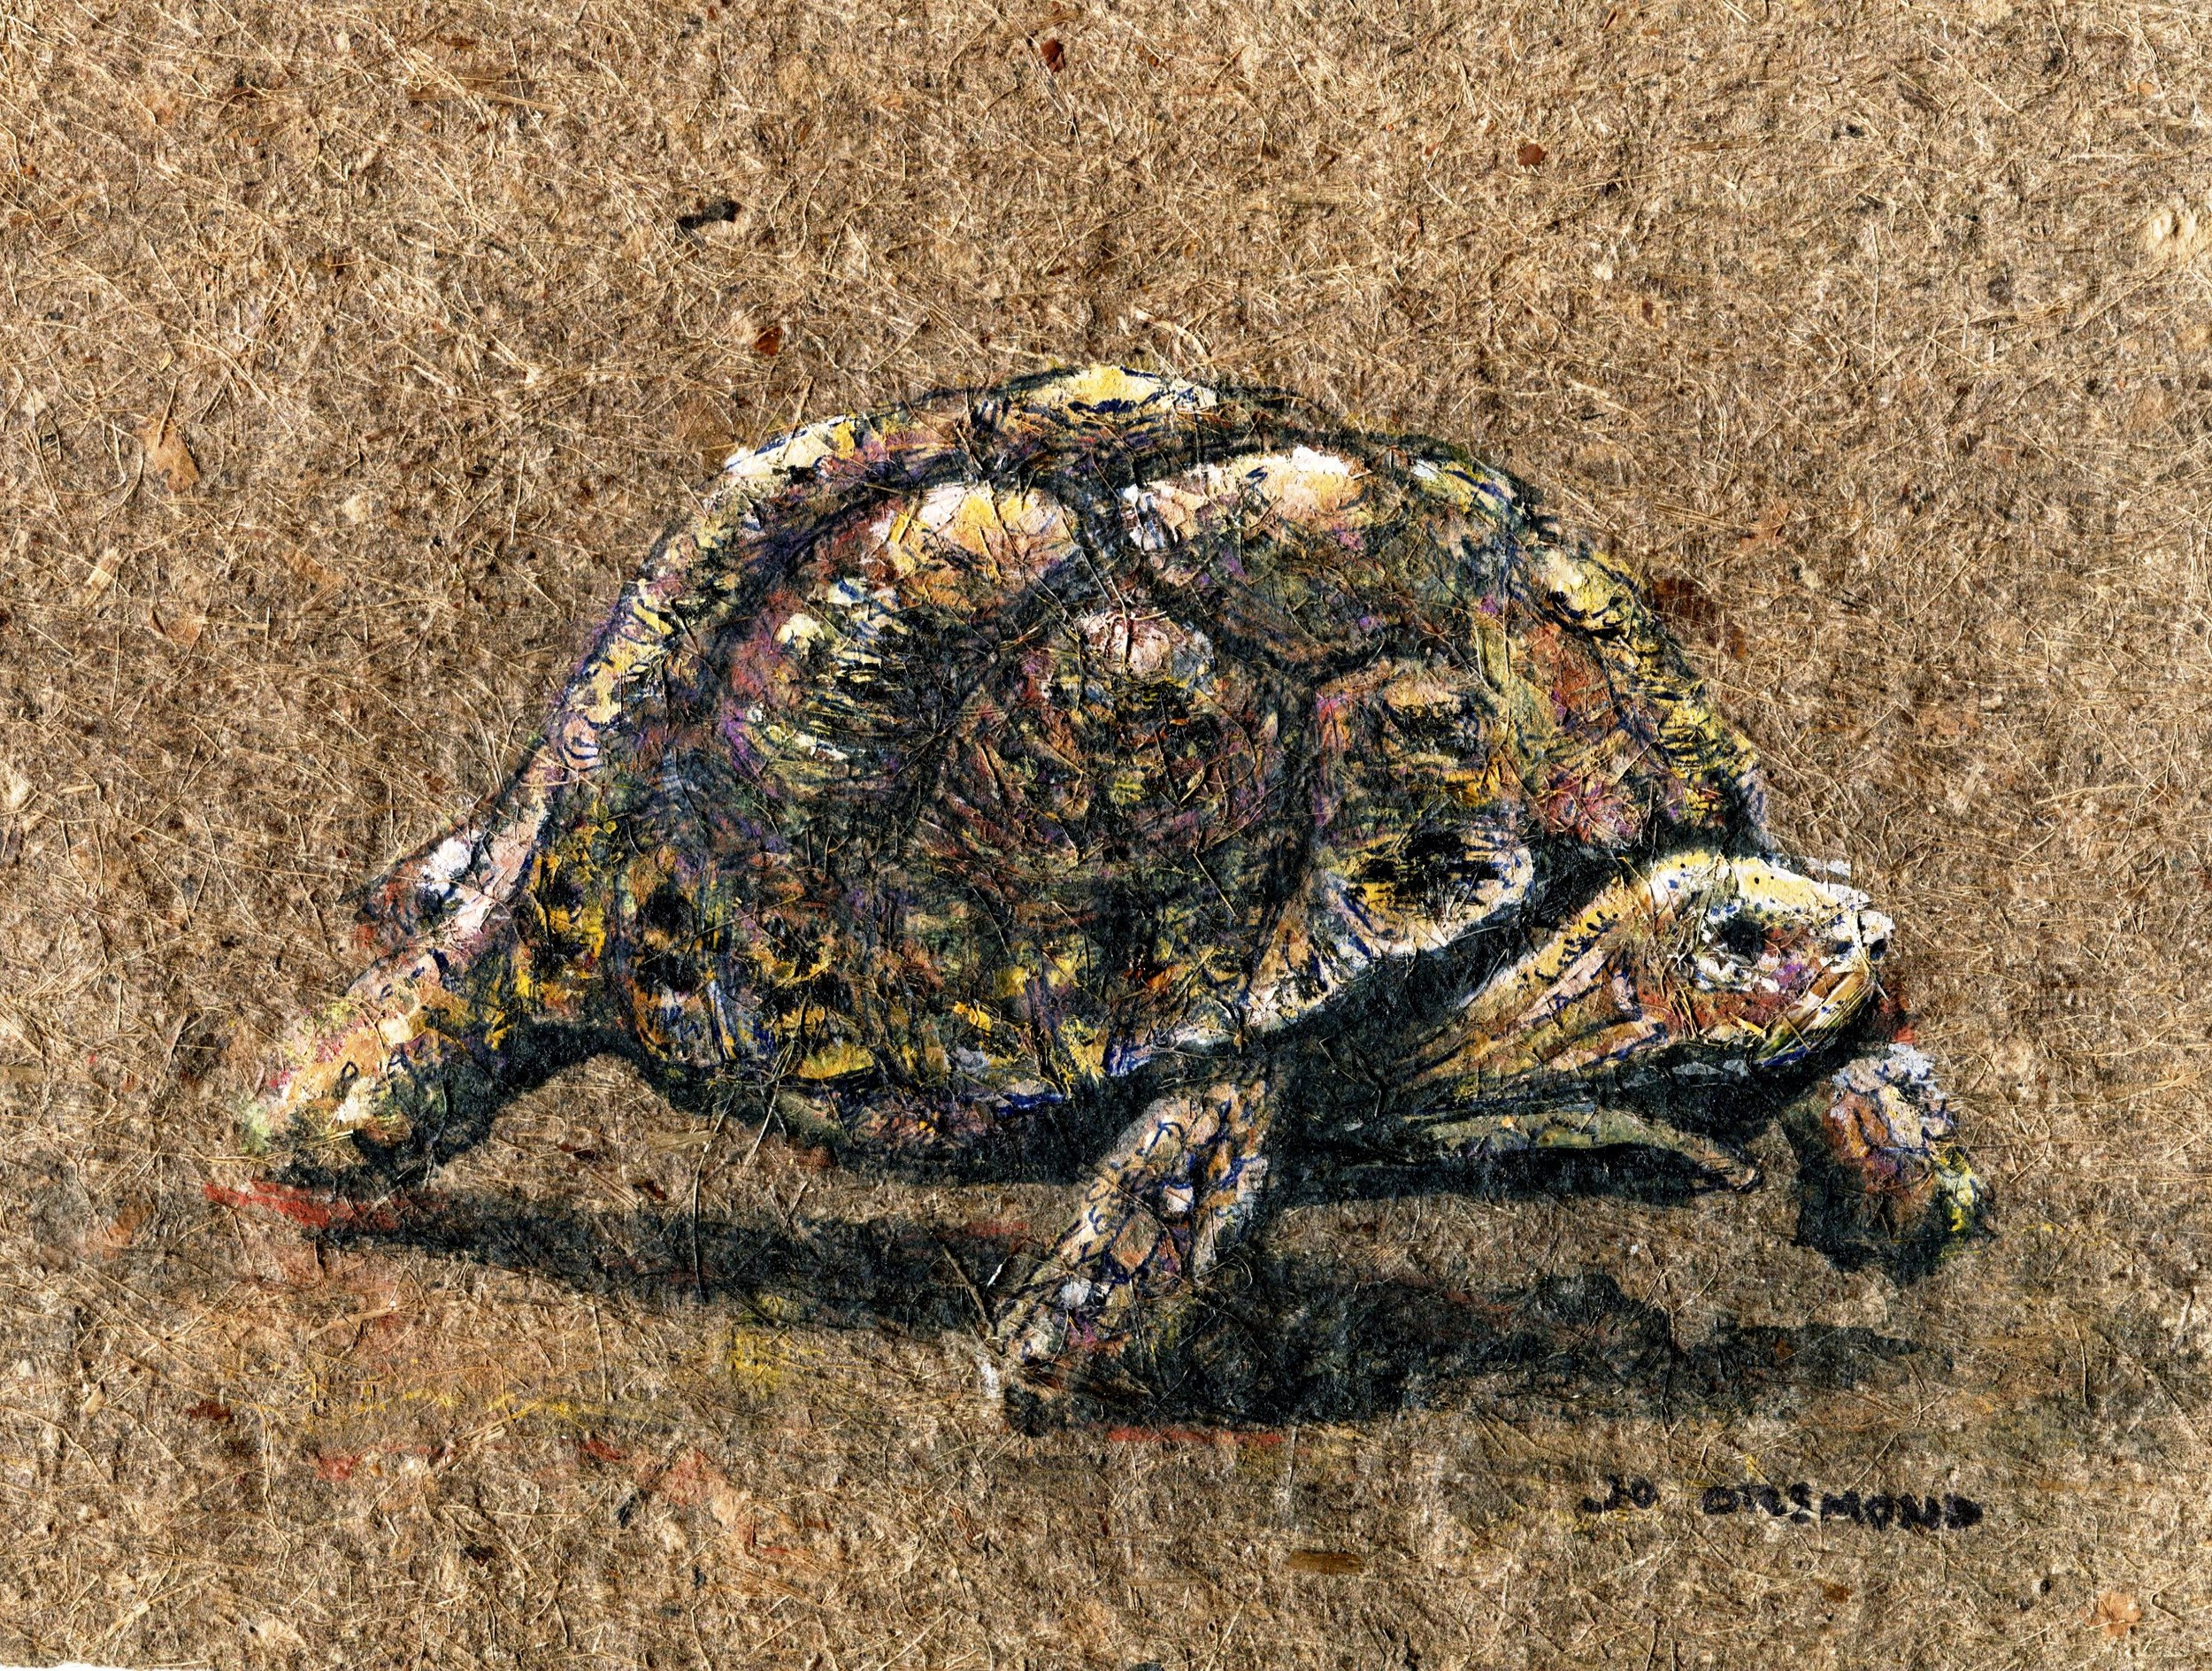 14A JO ORSMOND, TORTOISE, MIXED MEDIA ON DUNG PAPER